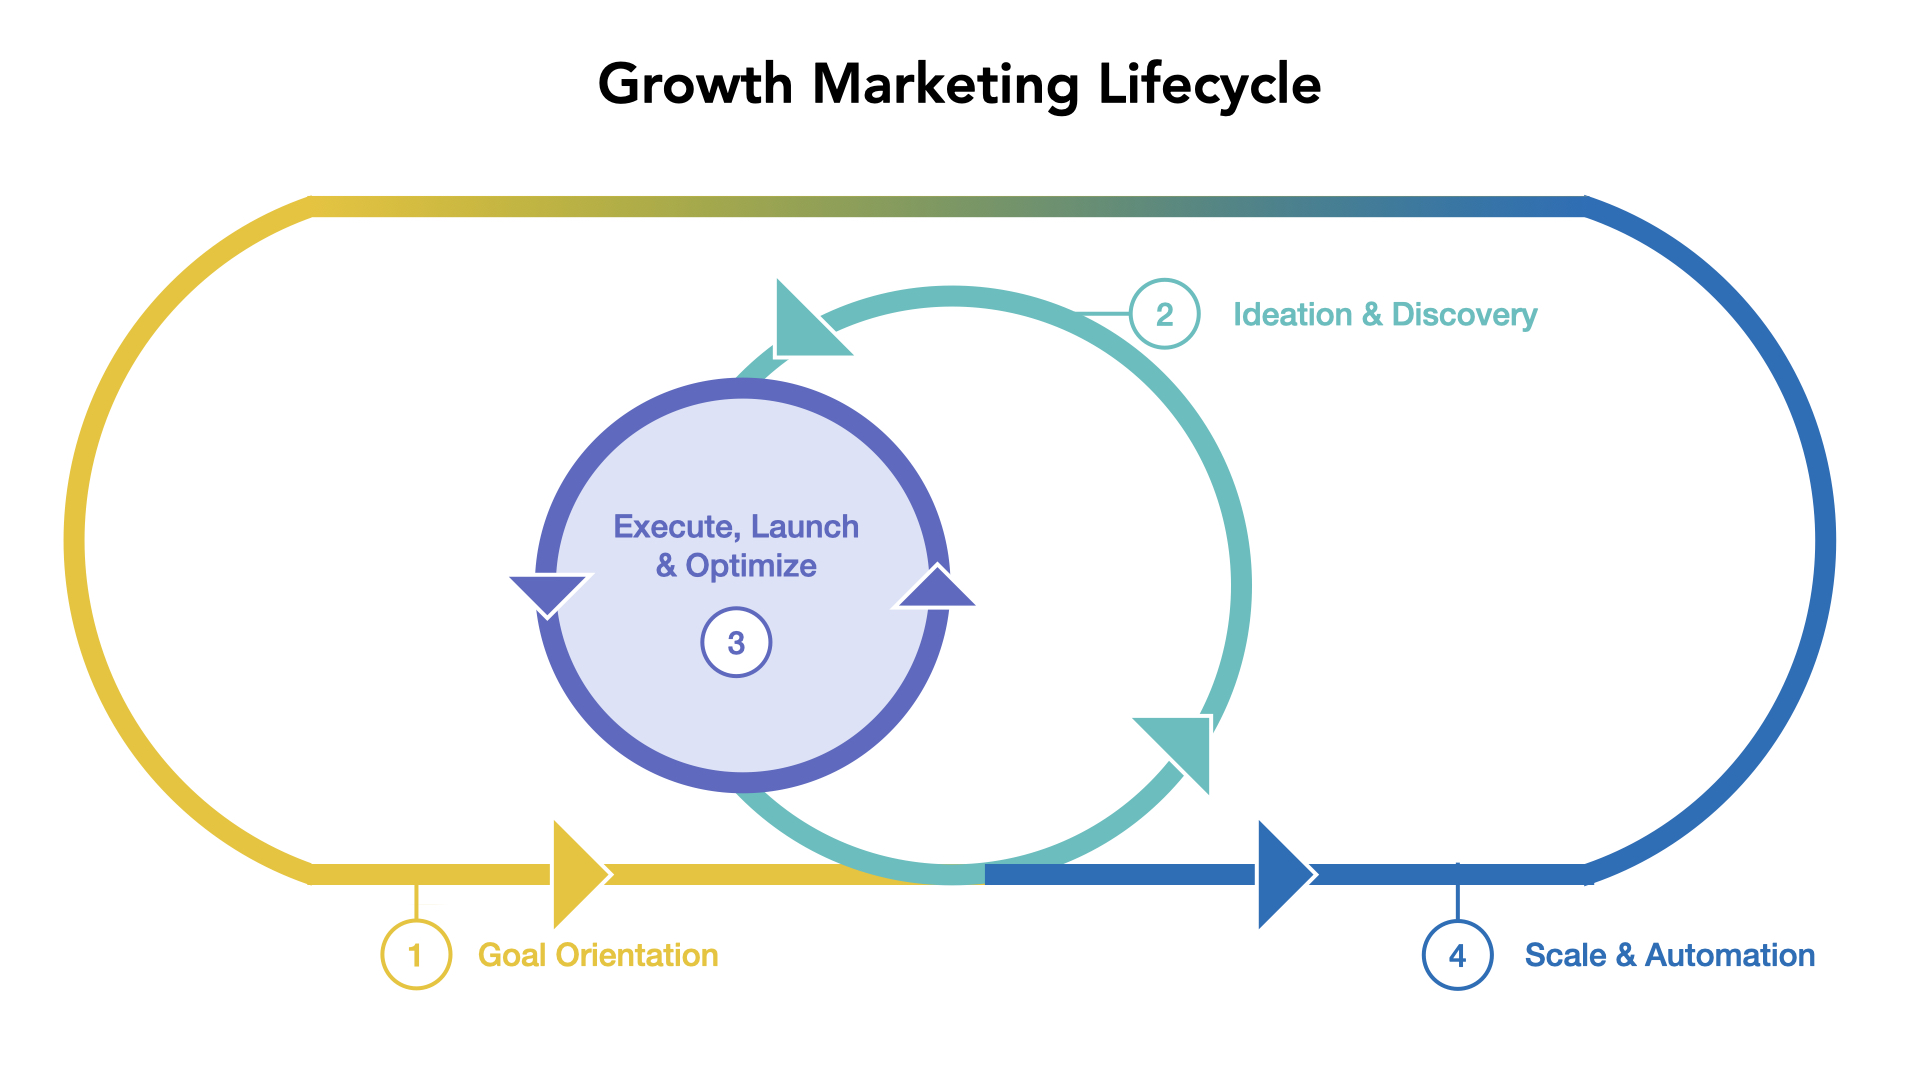 The Growth Marketing Lifecycle (GMLC)